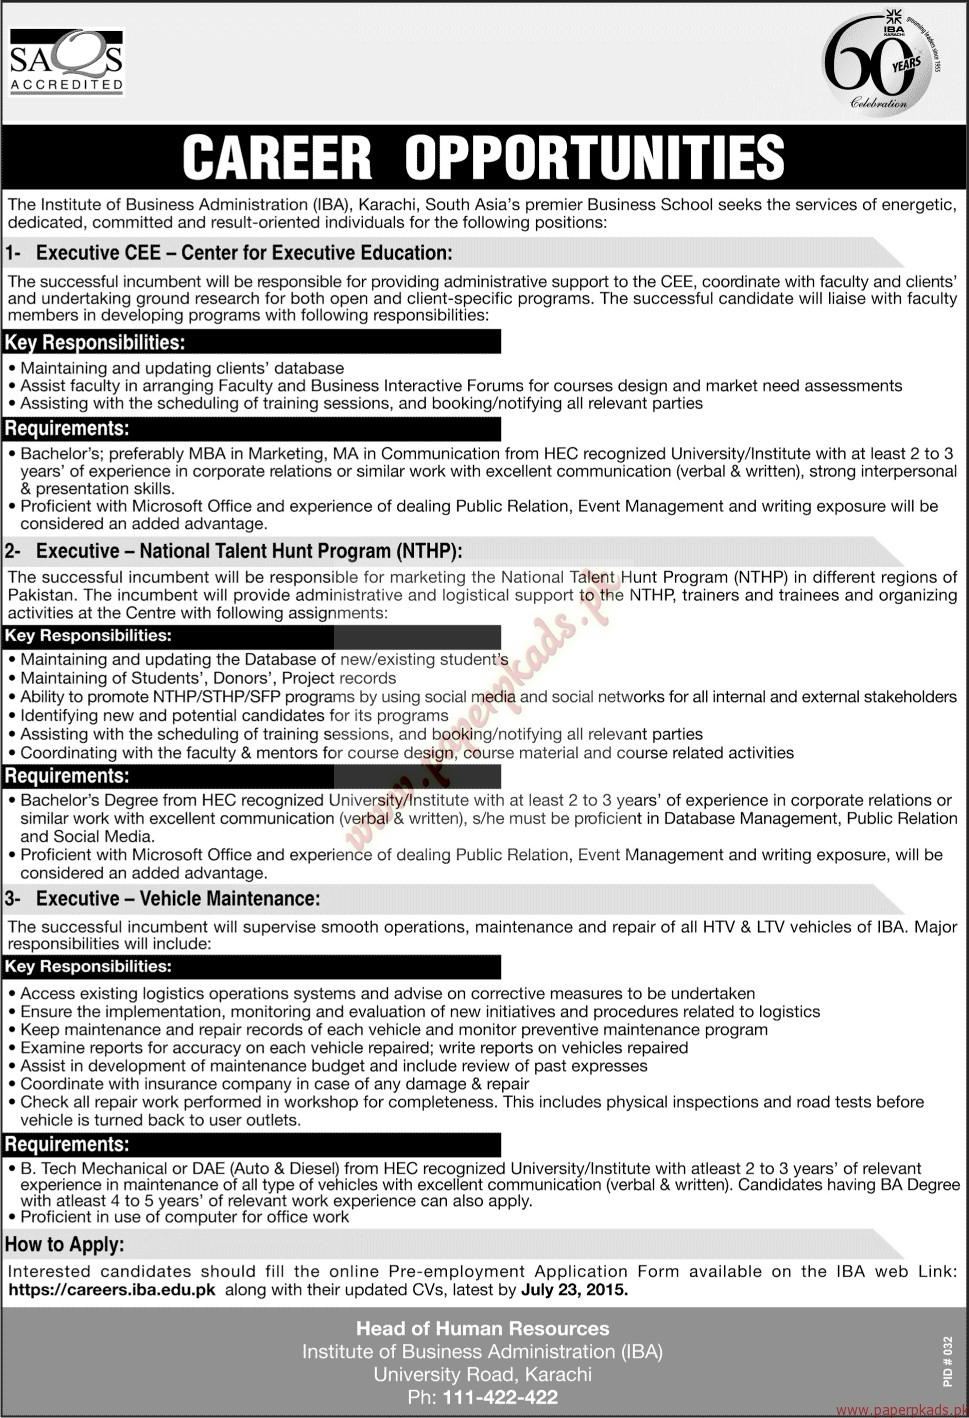 the institute of business administration karachi jobs jang jobs the institute of business administration karachi jobs jang jobs ads 05 2015